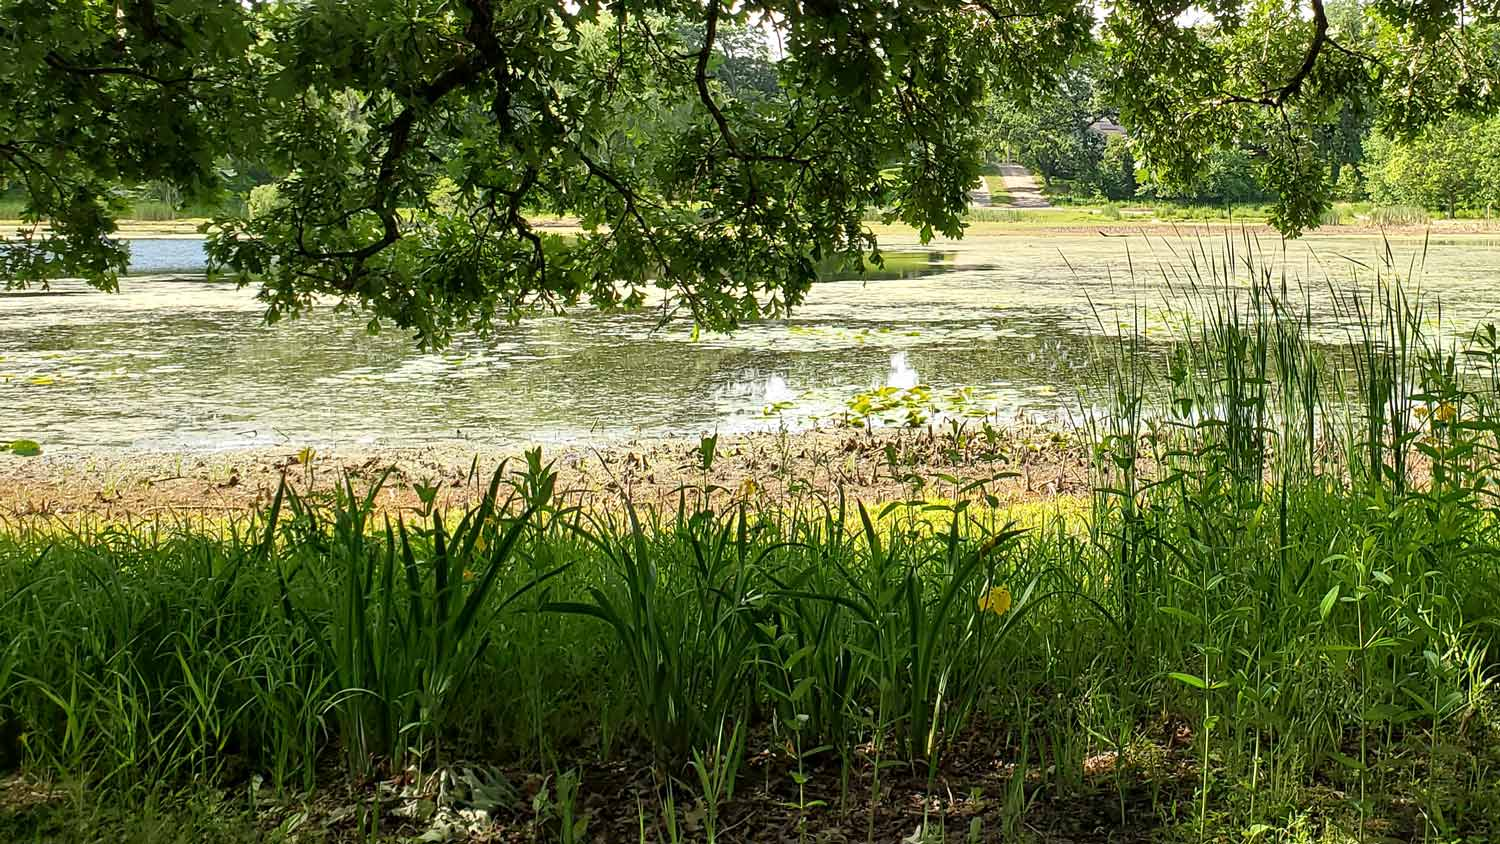 View of pond under tree canopy at Veteran Acres Park.